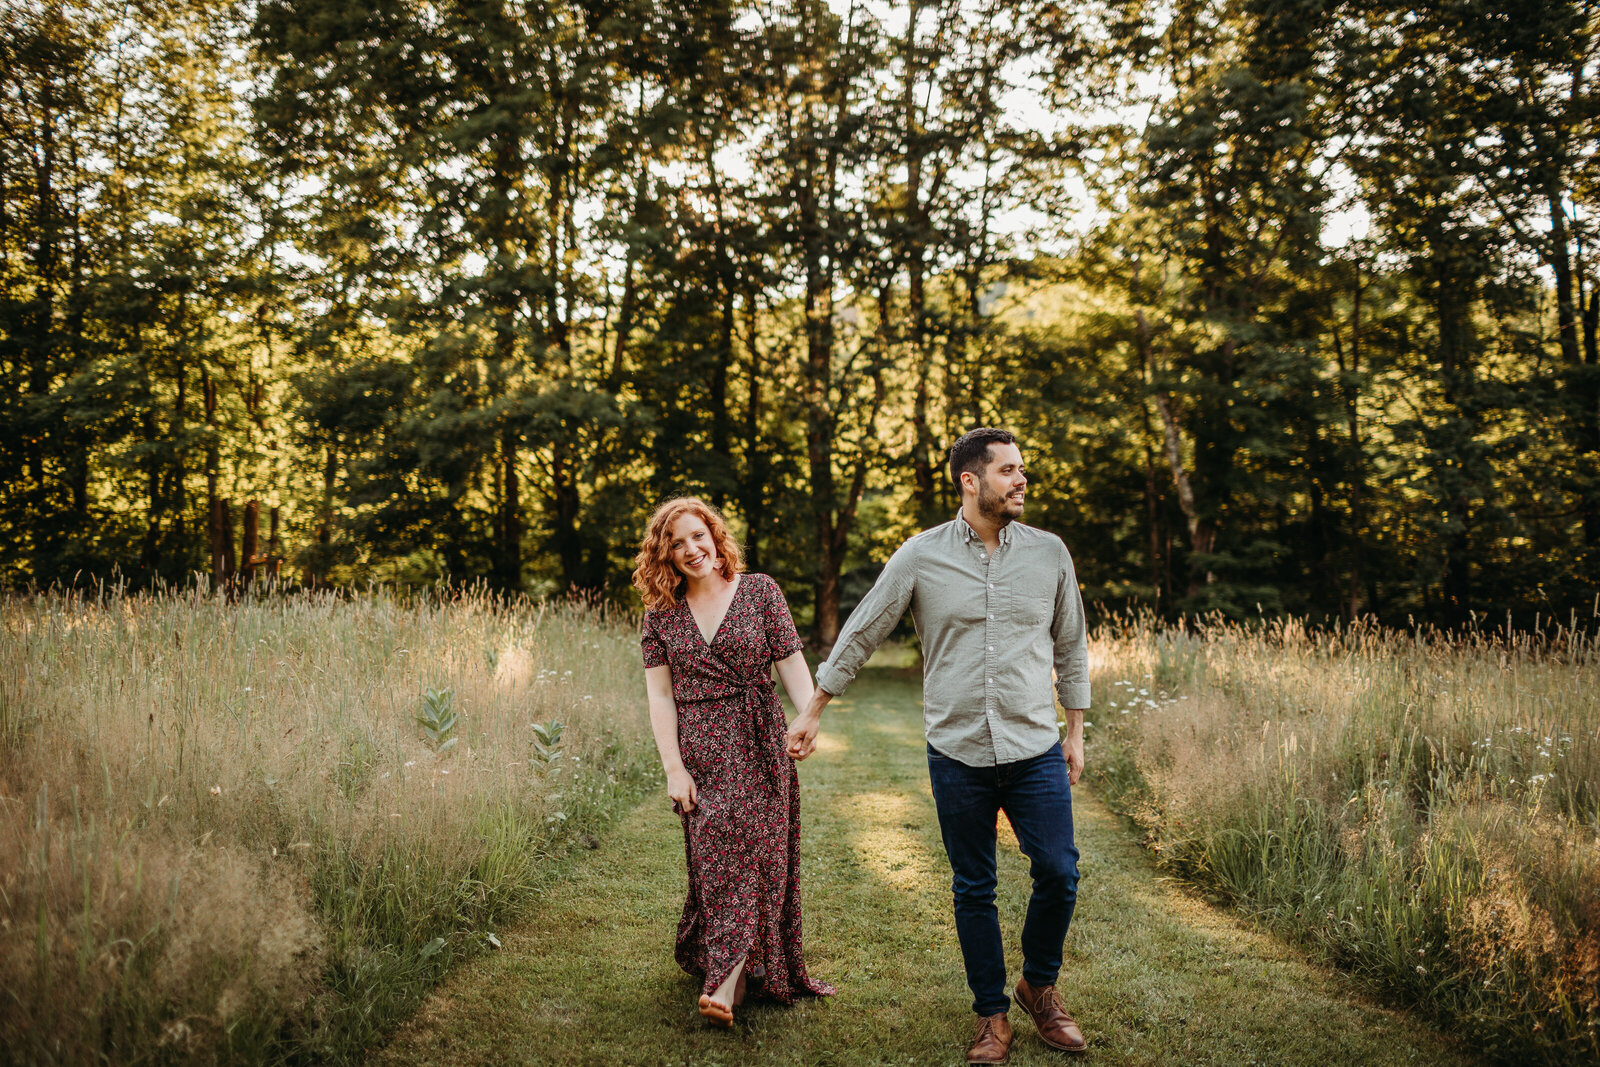 couple walks holding hands in a field during engagement shoot